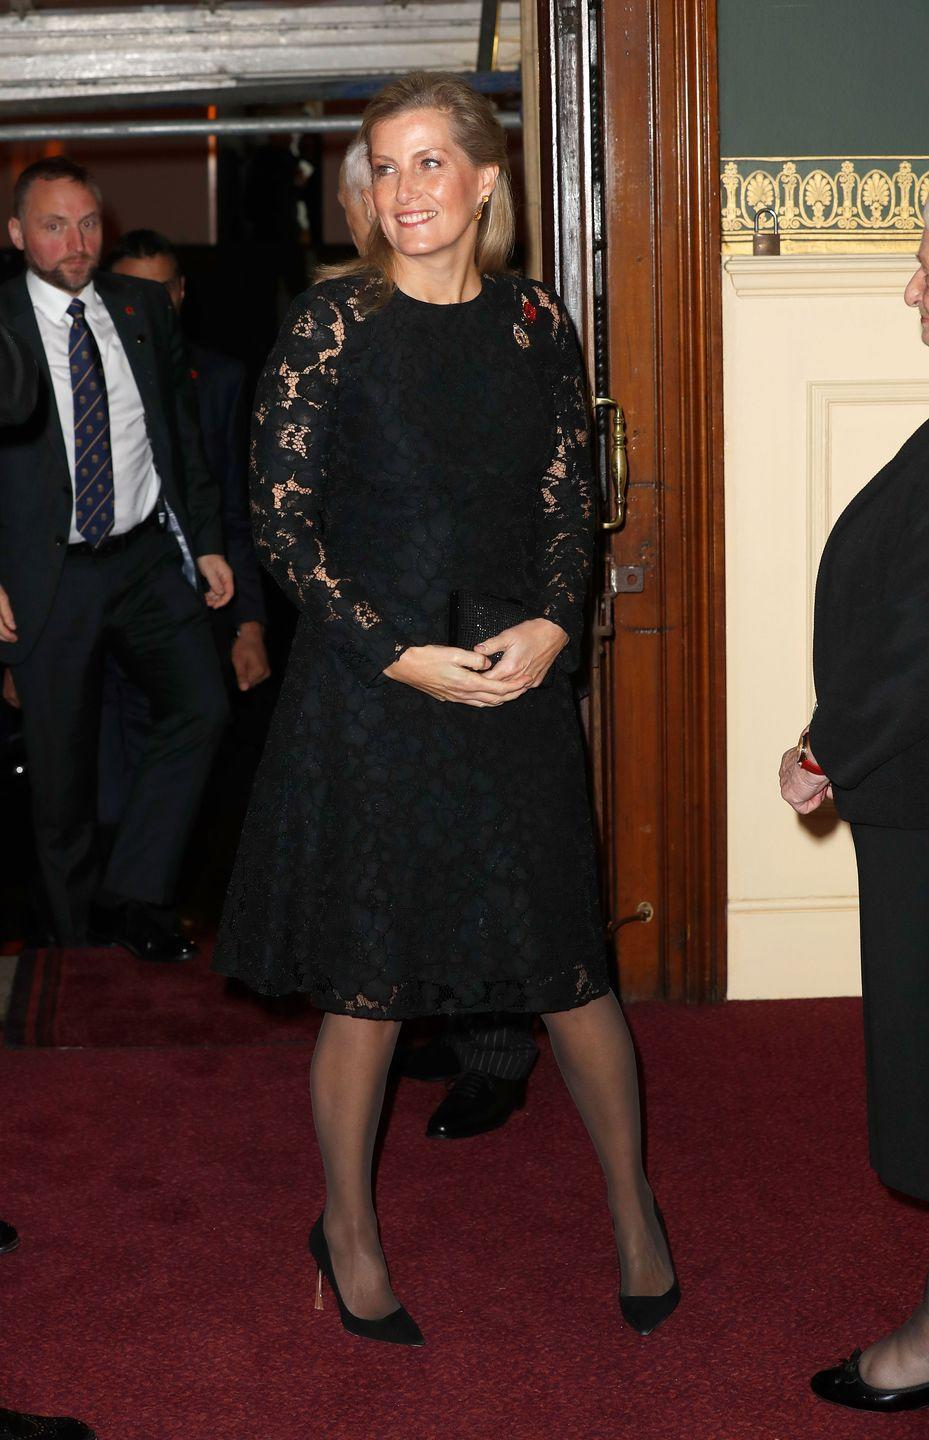 """<p>Countess Sophie wore an elegant black dress with long lace sleeves and a poppy pin to attend the <a href=""""https://www.townandcountrymag.com/society/tradition/g24747942/royal-family-festival-of-remembrance-queen-elizabeth-prince-charles-photos/"""" rel=""""nofollow noopener"""" target=""""_blank"""" data-ylk=""""slk:Royal British Legion Festival of Remembrance"""" class=""""link rapid-noclick-resp"""">Royal British Legion Festival of Remembrance </a>at the Royal Albert Hall. </p>"""